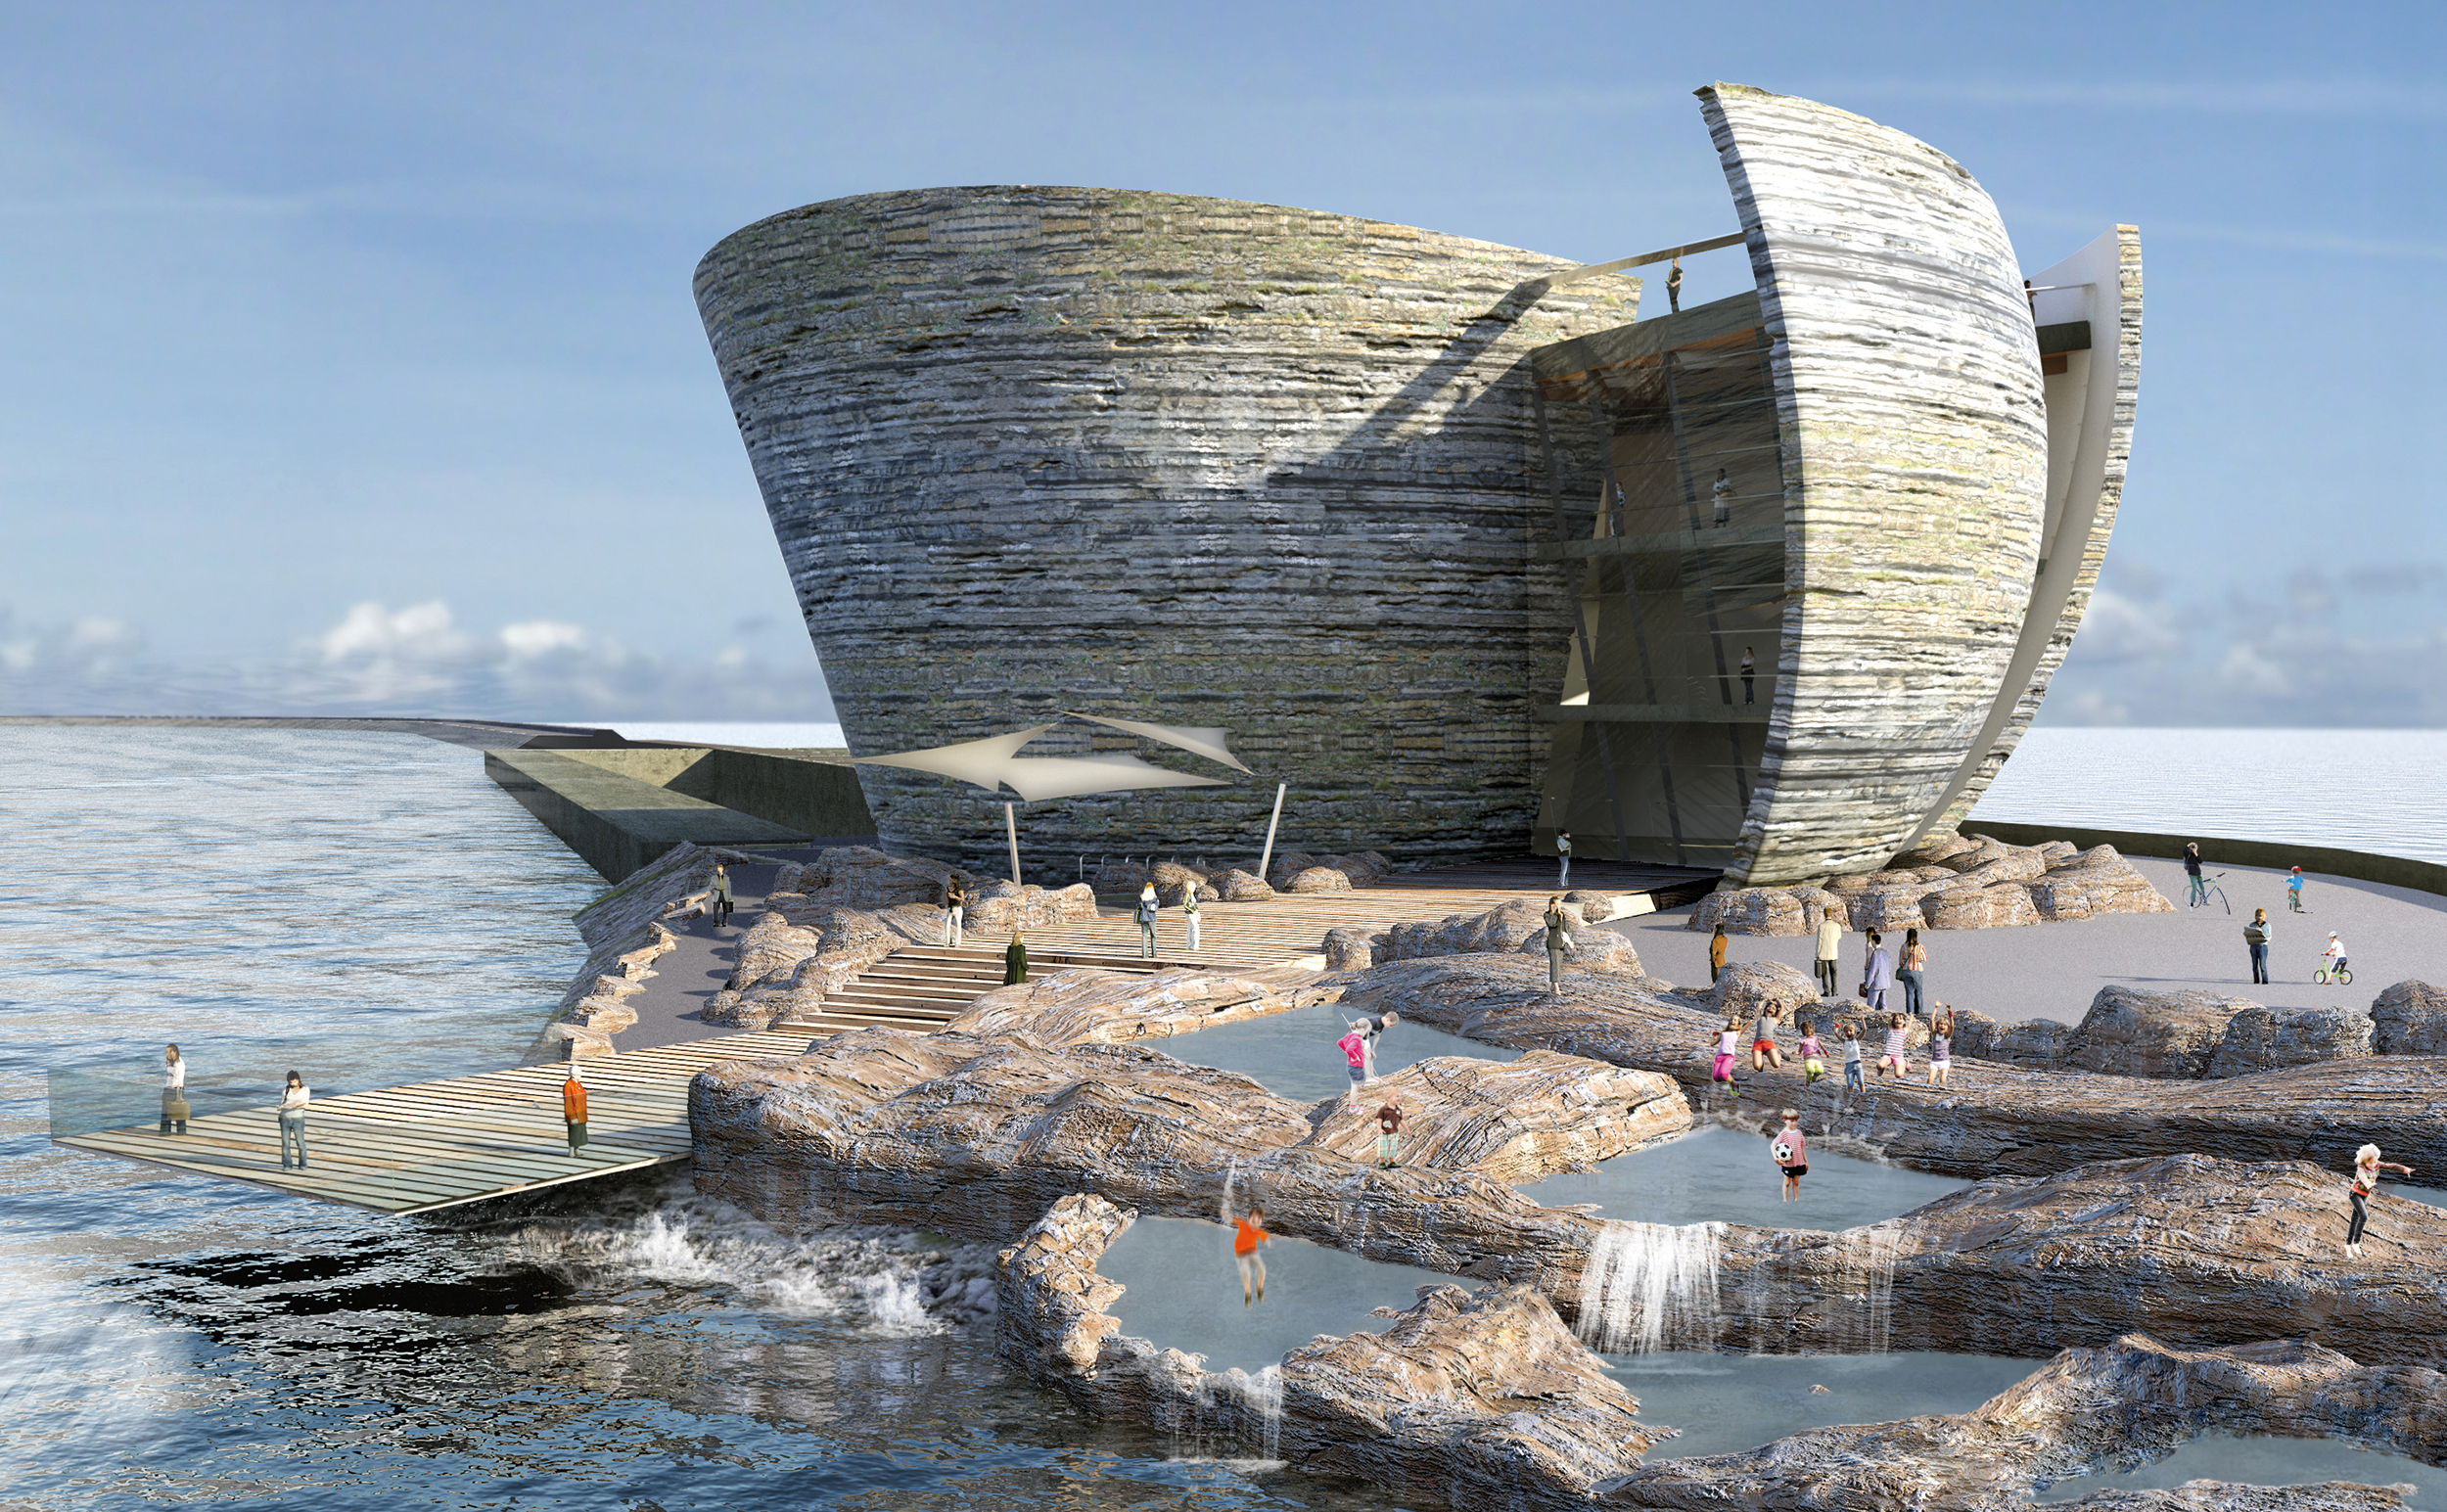 Hydro news 32 swansea bay wales arrival area and rock pools nvjuhfo Images